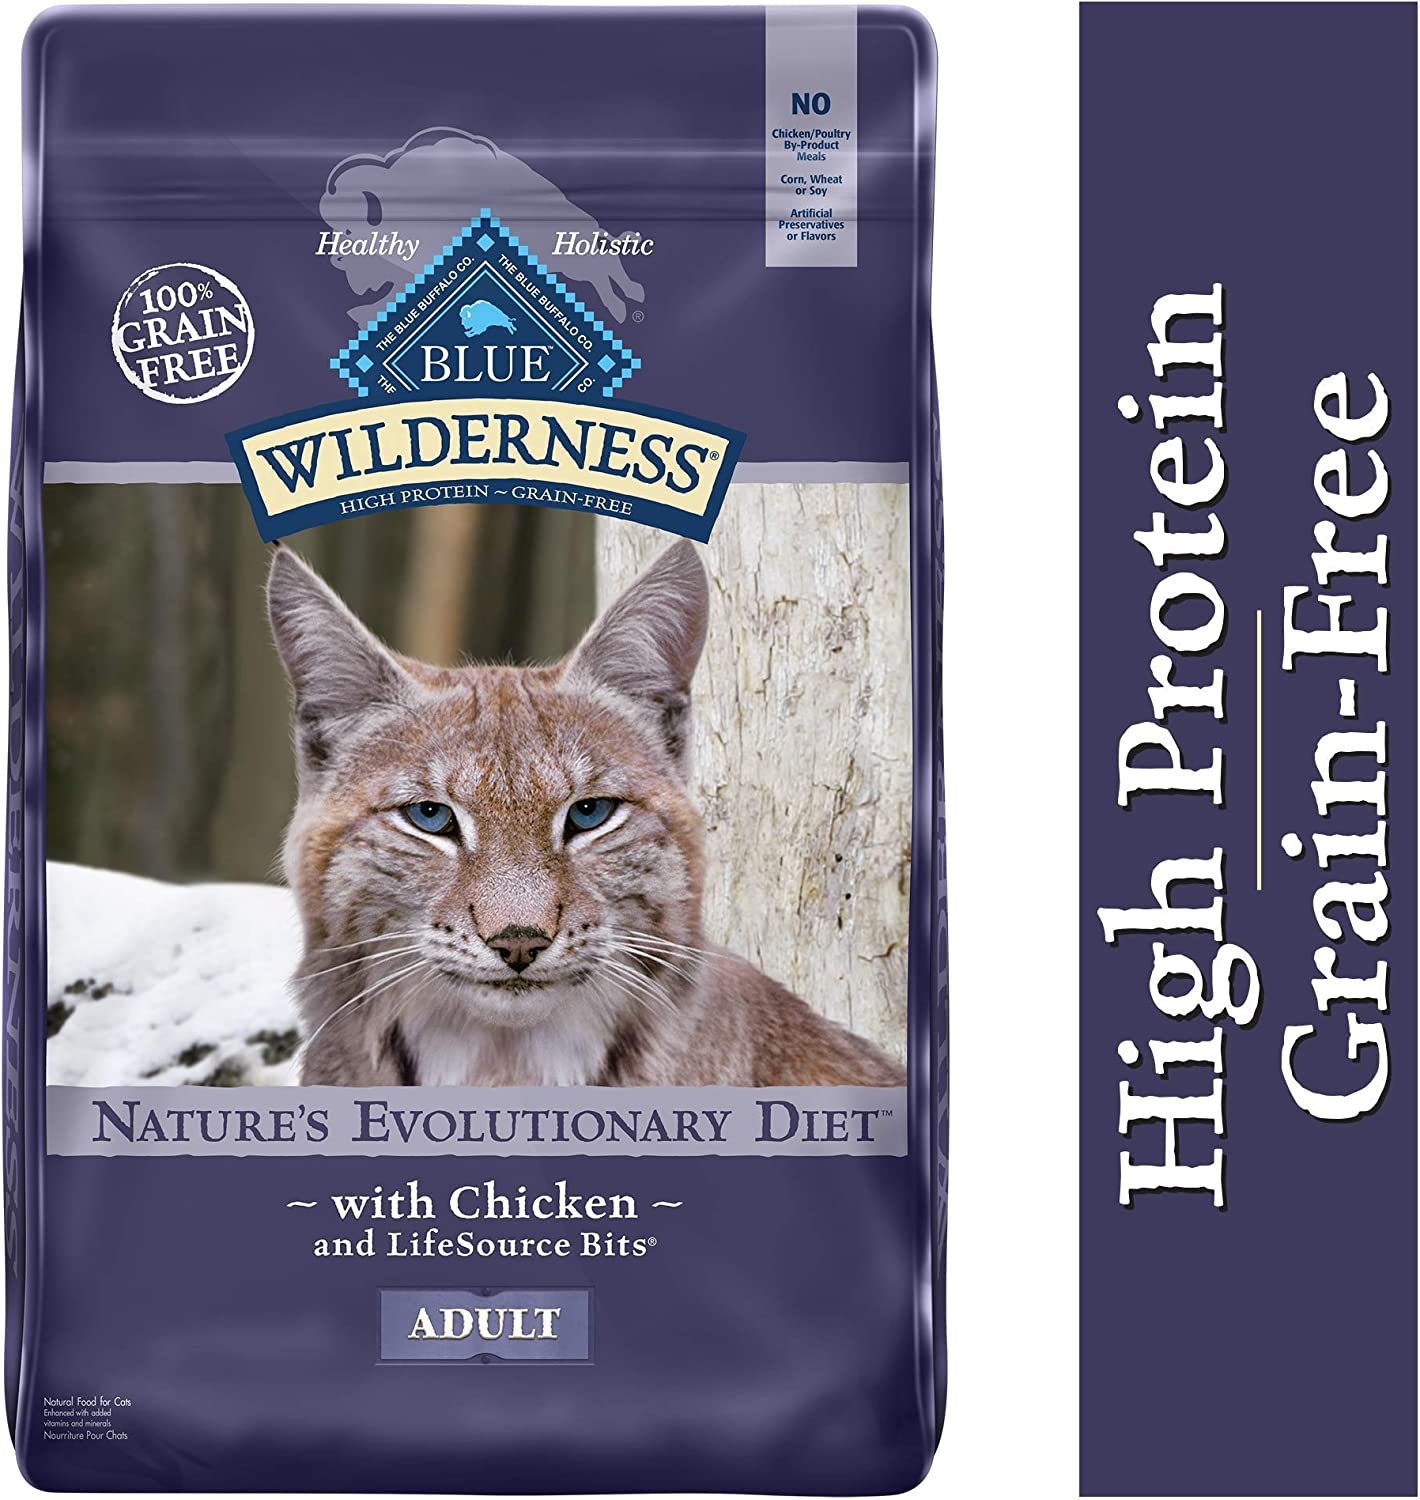 Blue Buffalo Wilderness High Protein Natural Adult Dry Cat Food Featured Image